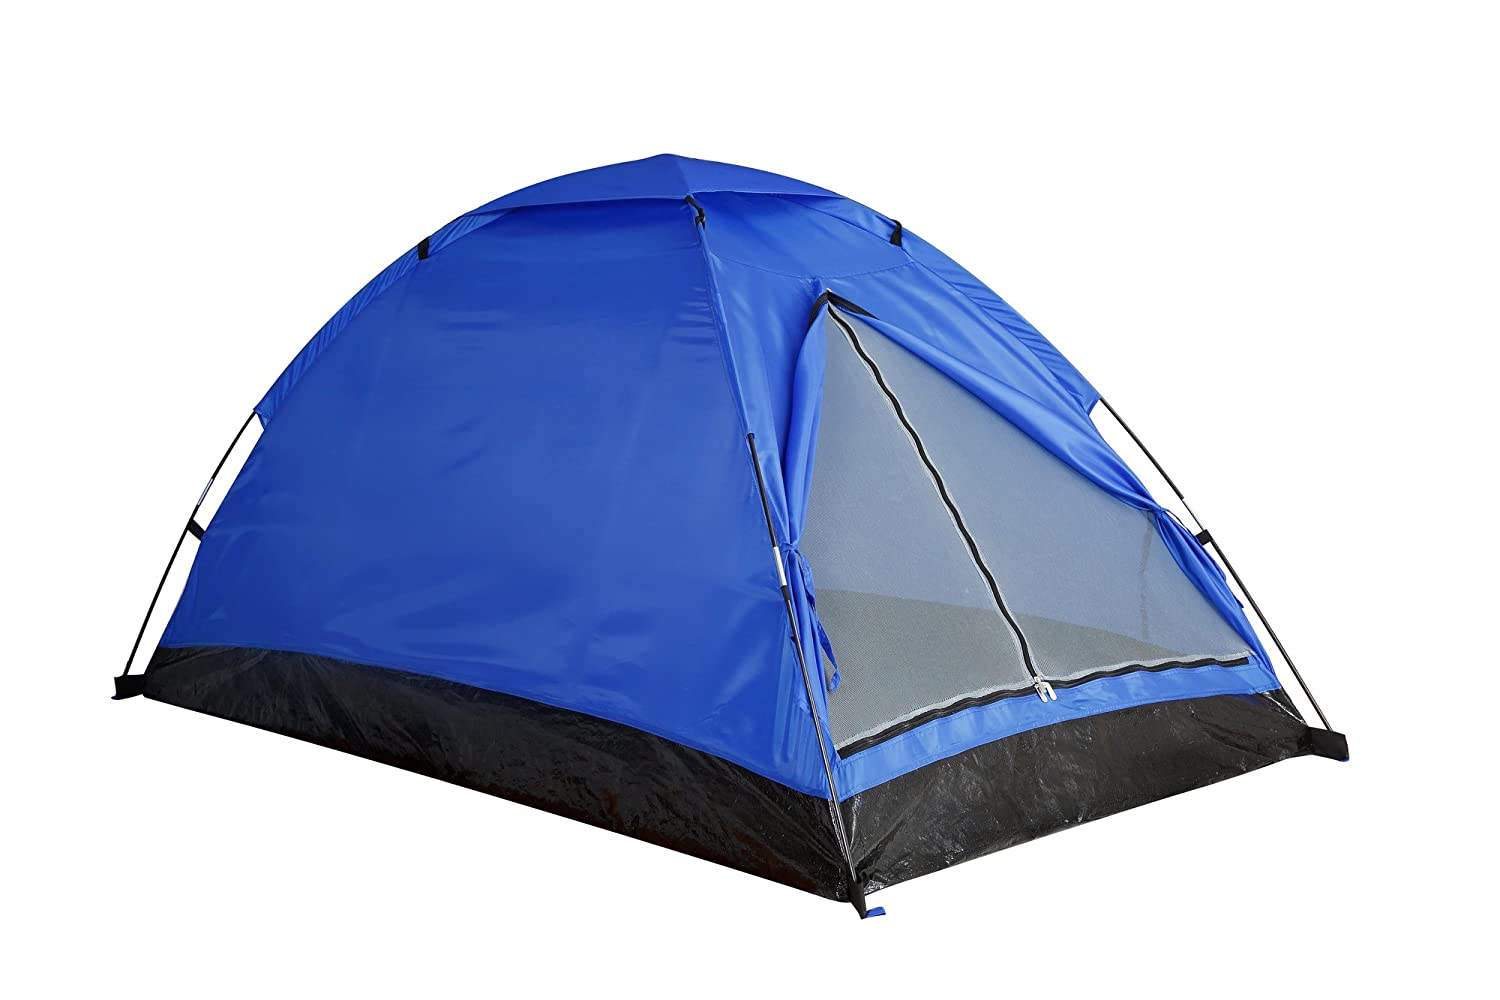 ... Family Dome Tent - 2 Person 2 Season Hiking Fishing Instant Portable Shelter w/ Easy Set-Up By Alvantor (Dark Blue 2 Person)  Sports u0026 Outdoors  sc 1 st  Amazon.com & Amazon.com : Camping Tents Outdoor Travelite Backpacking Light ...